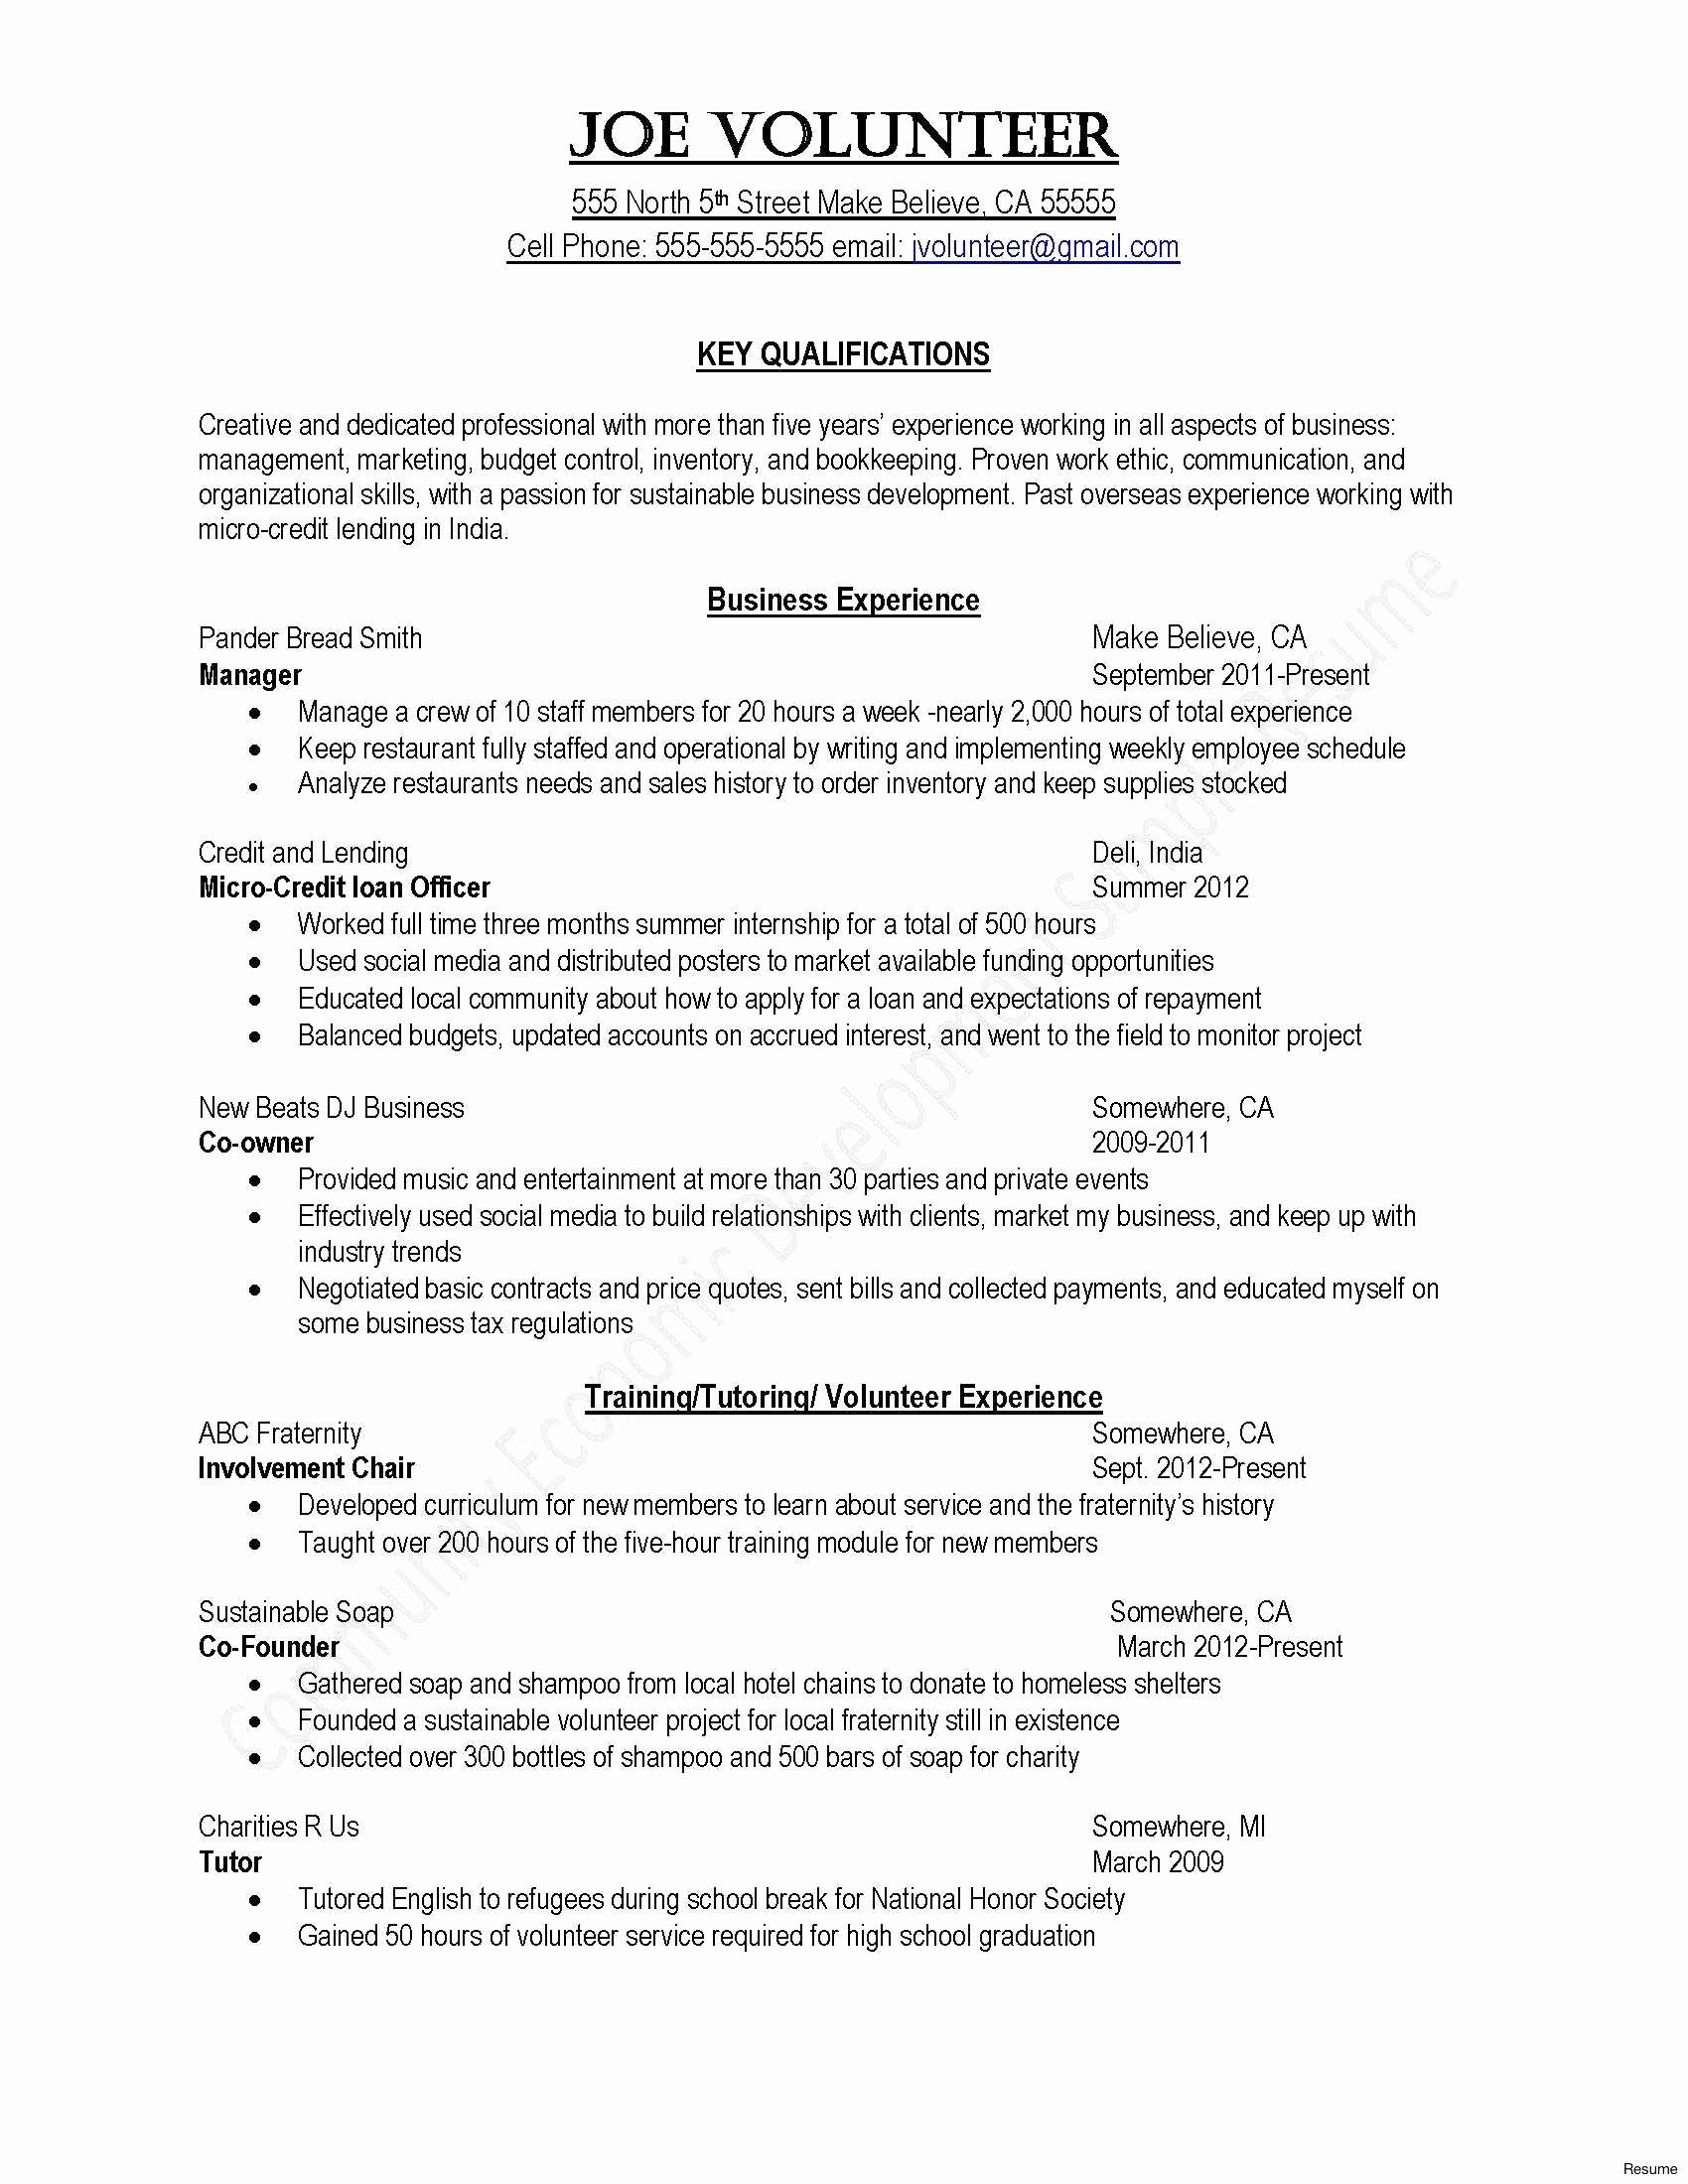 Cover Letter Template Word - Law Enforcement Resume Template Unique Resume Cover Letter Template